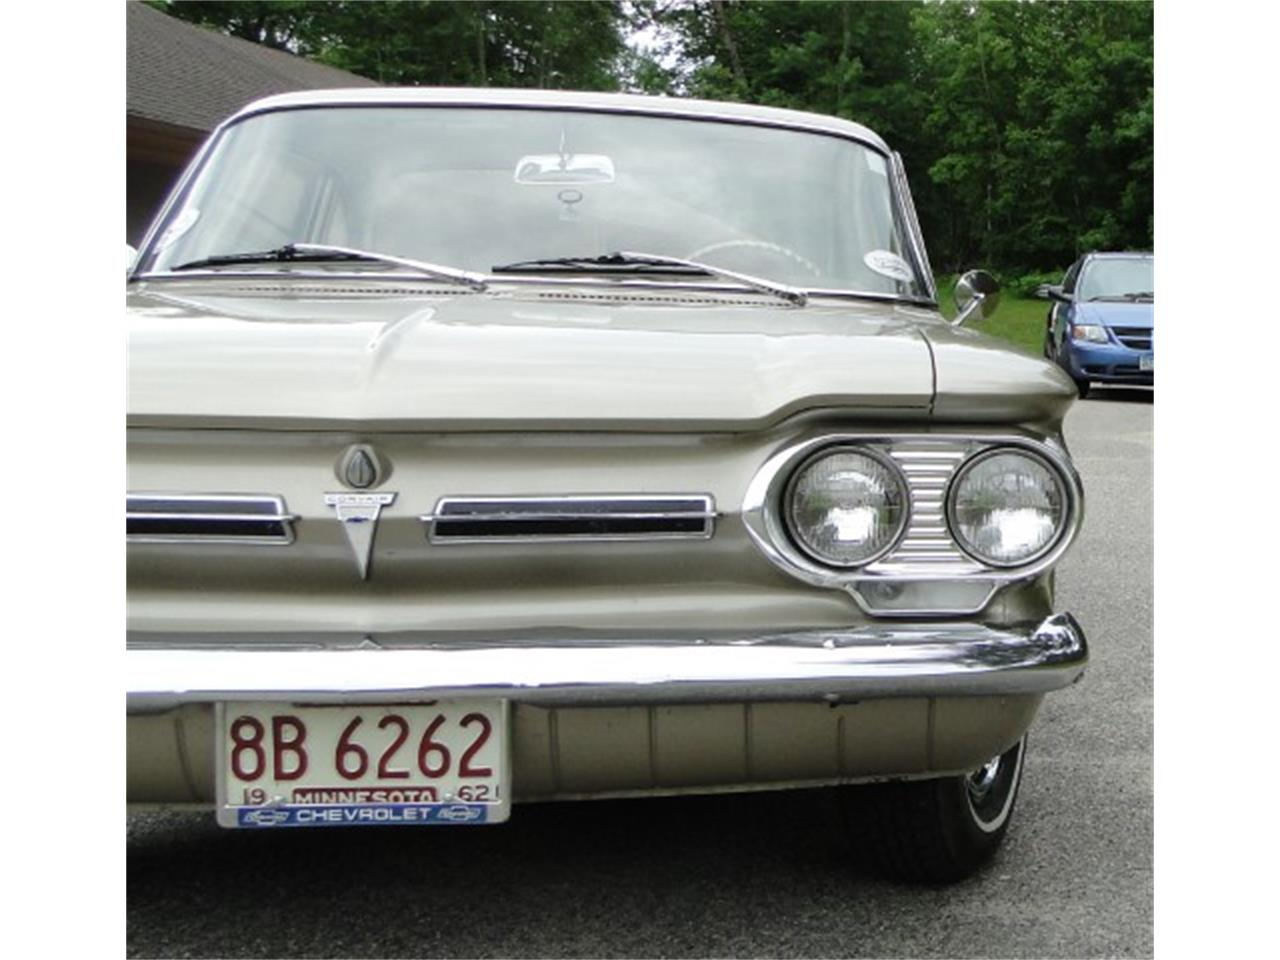 Large Picture of 1962 Chevrolet Corvair Monza - $11,000.00 - QIKQ